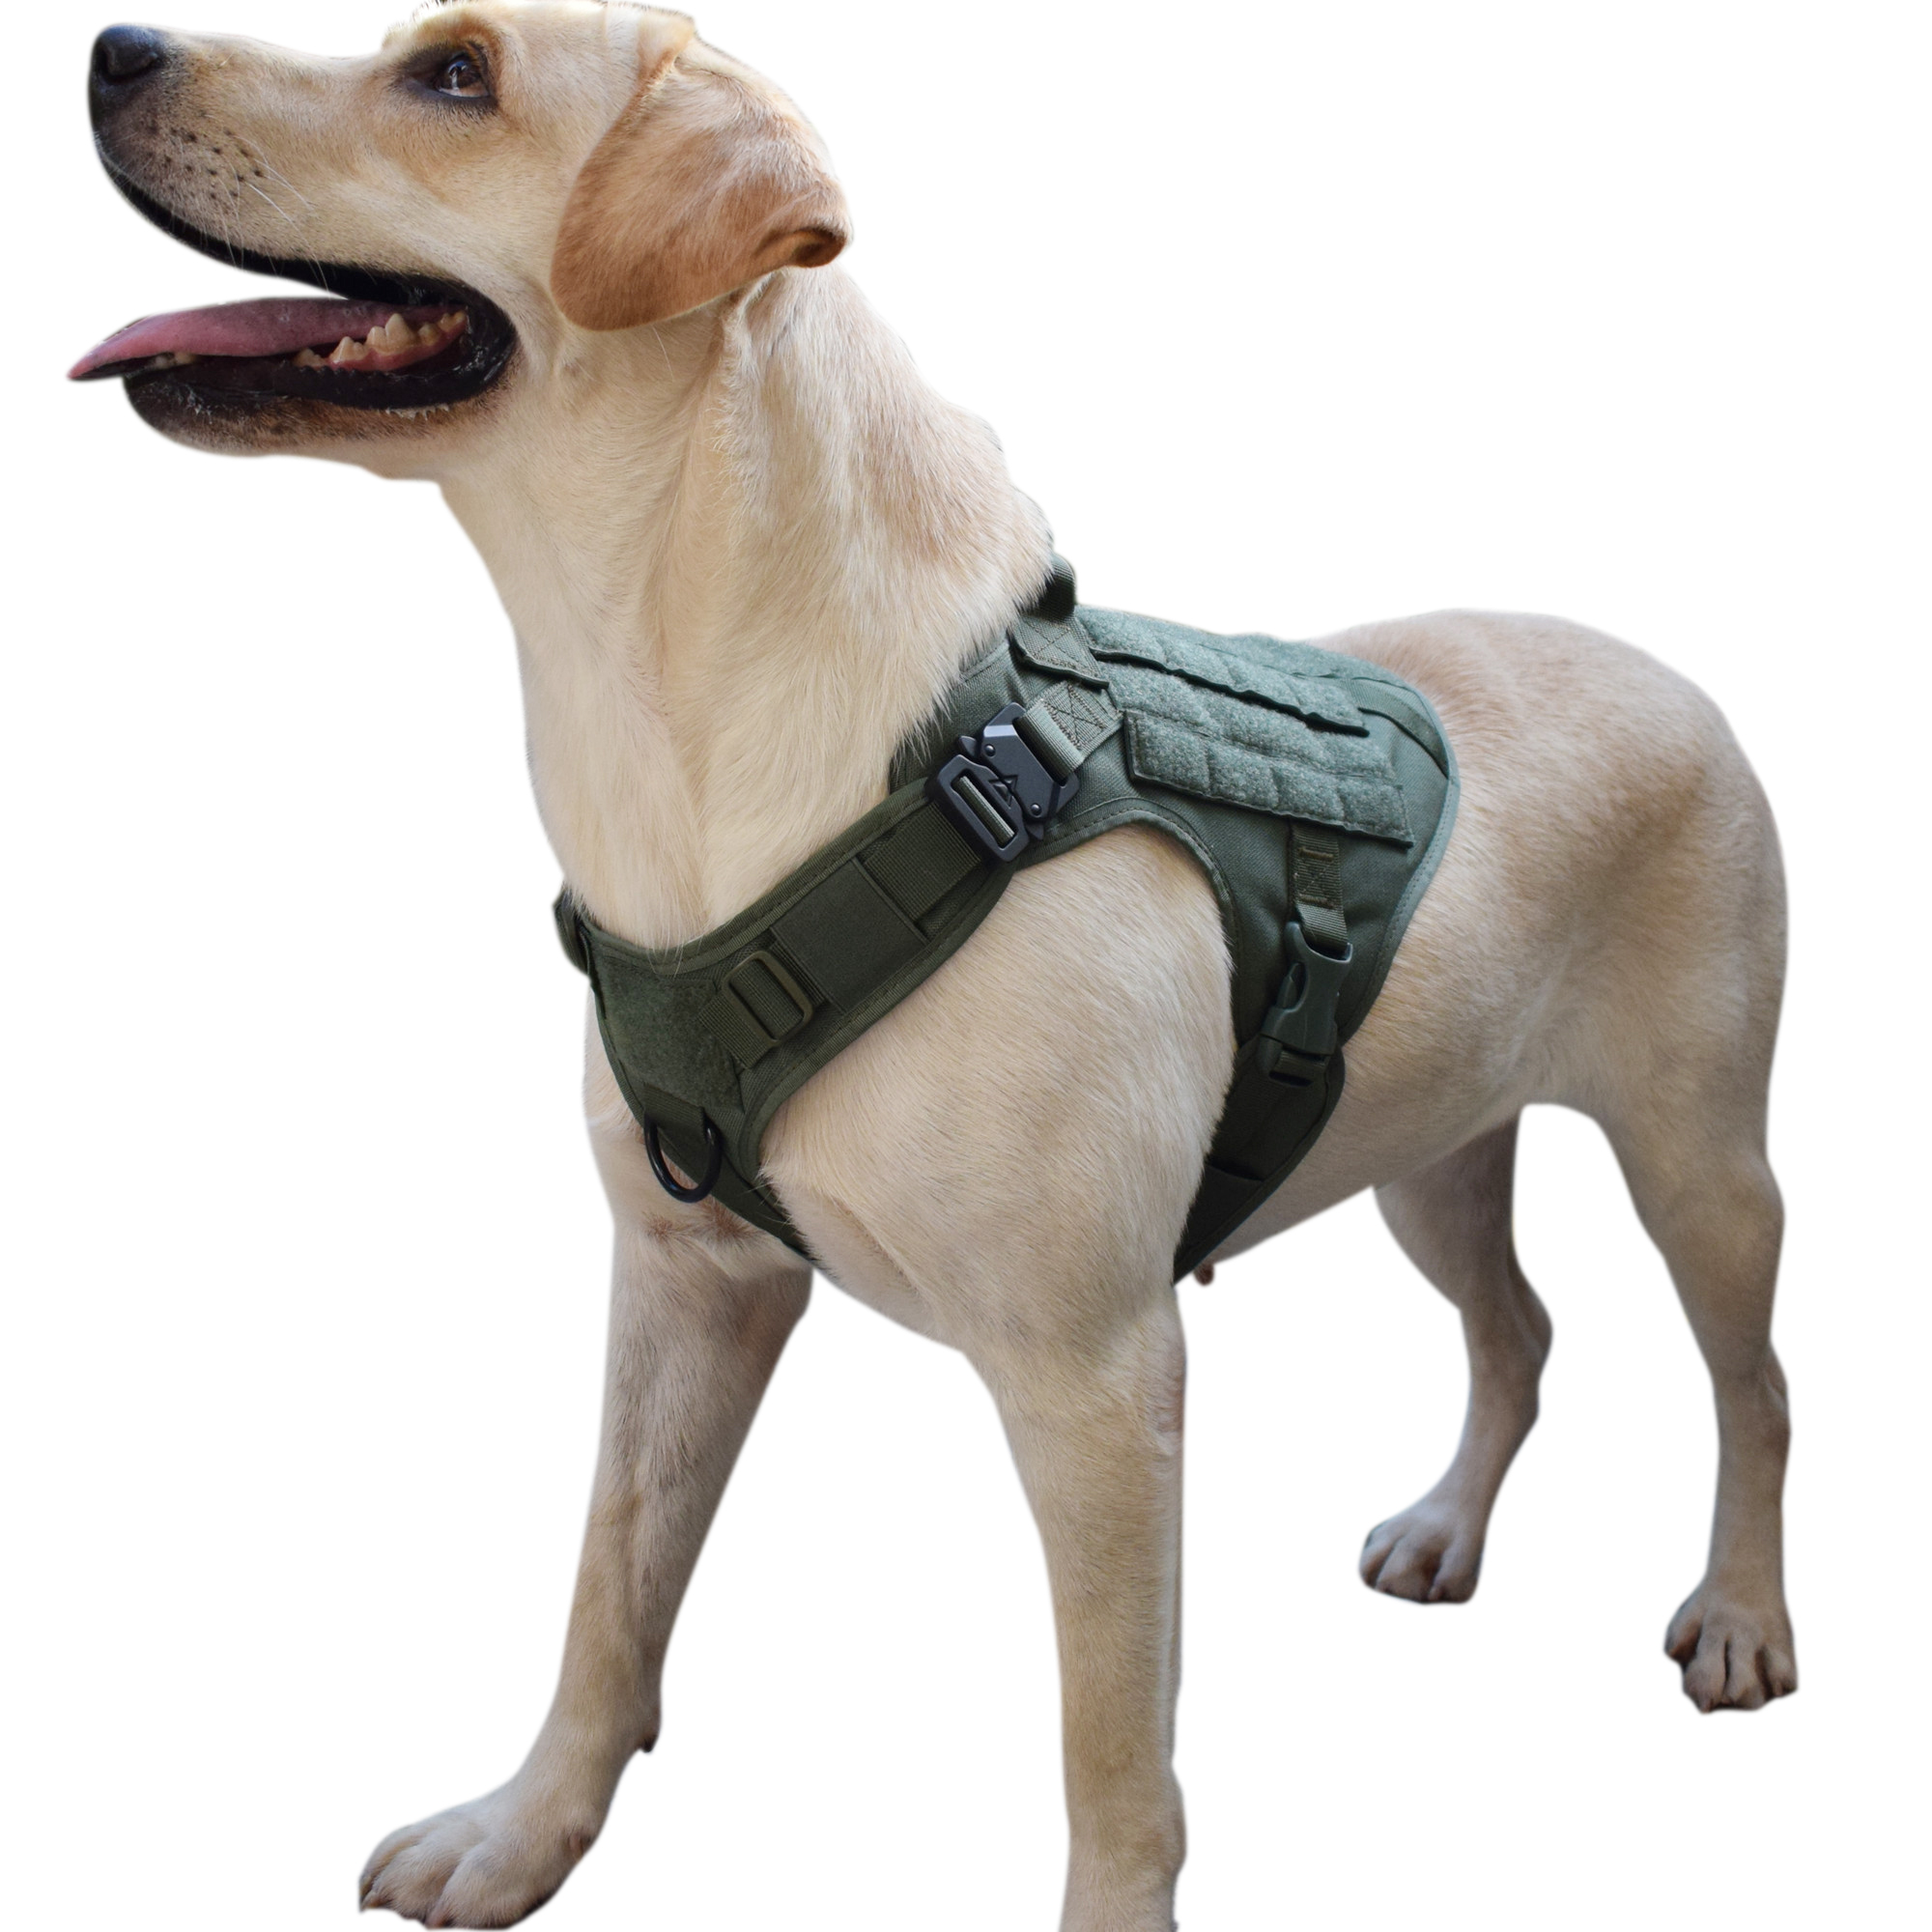 MXSLEUT Waterproof 1050D Nylon Molle System Tactical Dog Training Military Dog Harness Hunting dog Vest Police dog K9 Harness in Hunting Vests from Sports Entertainment